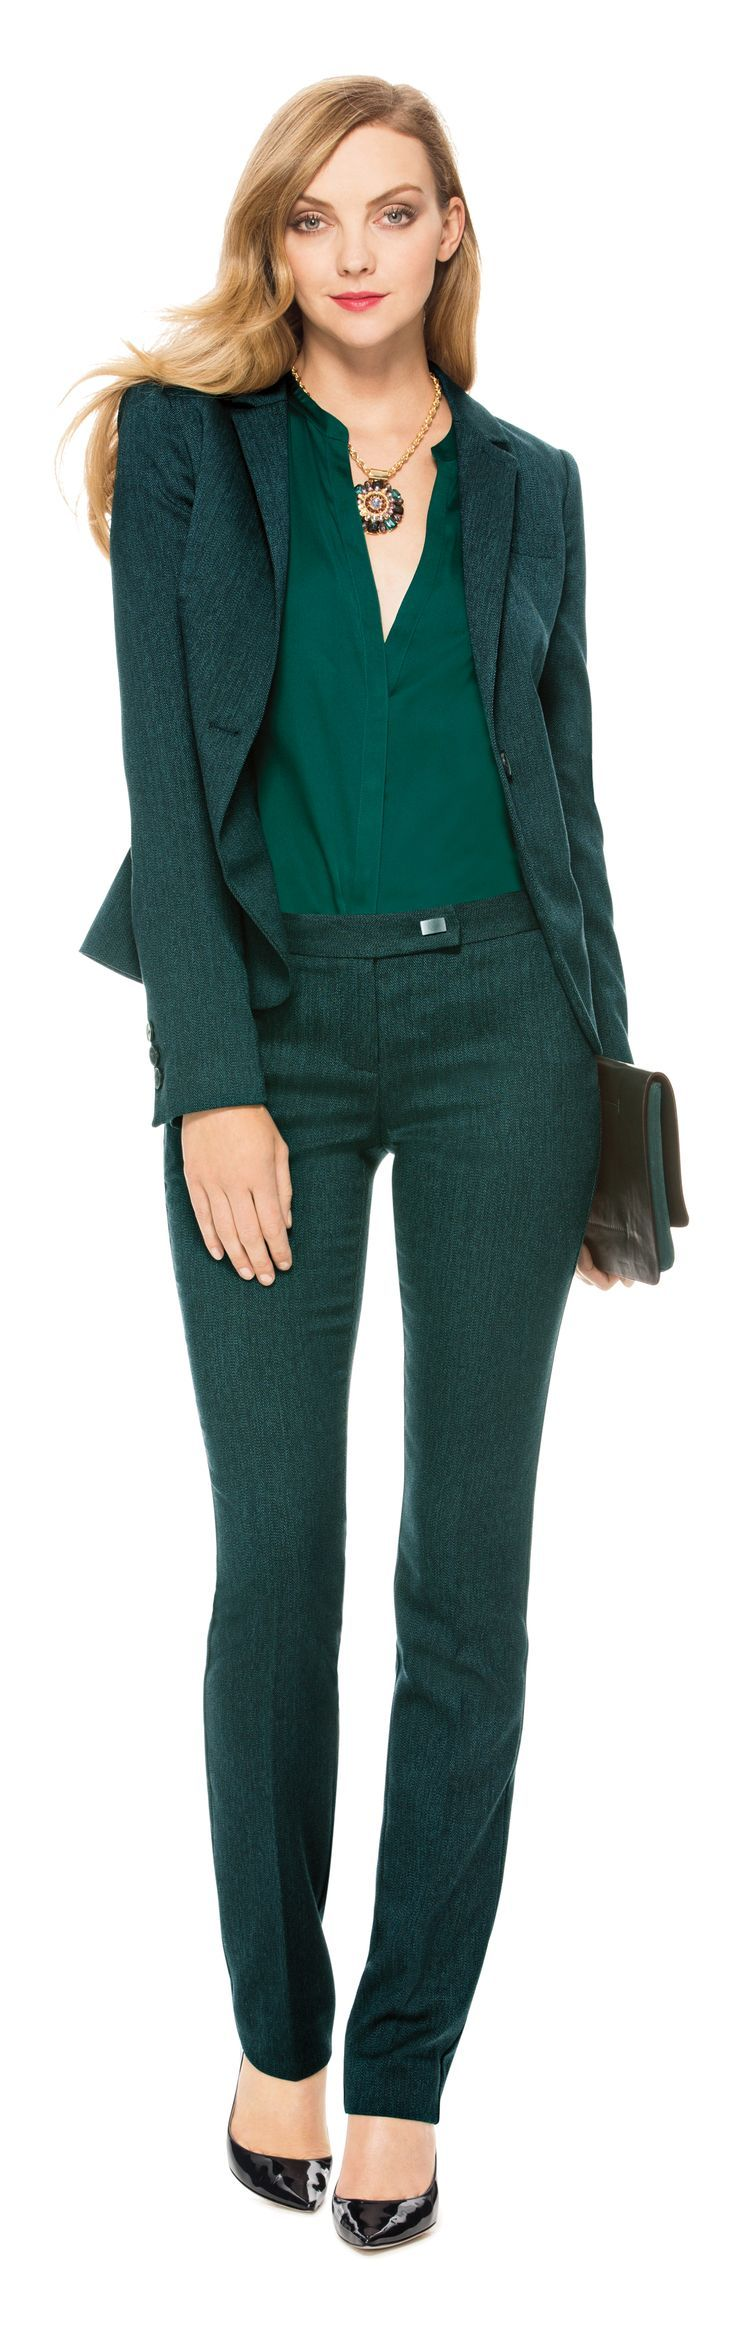 Fall / Winter - office wear - work outfit - deep green suit + ...